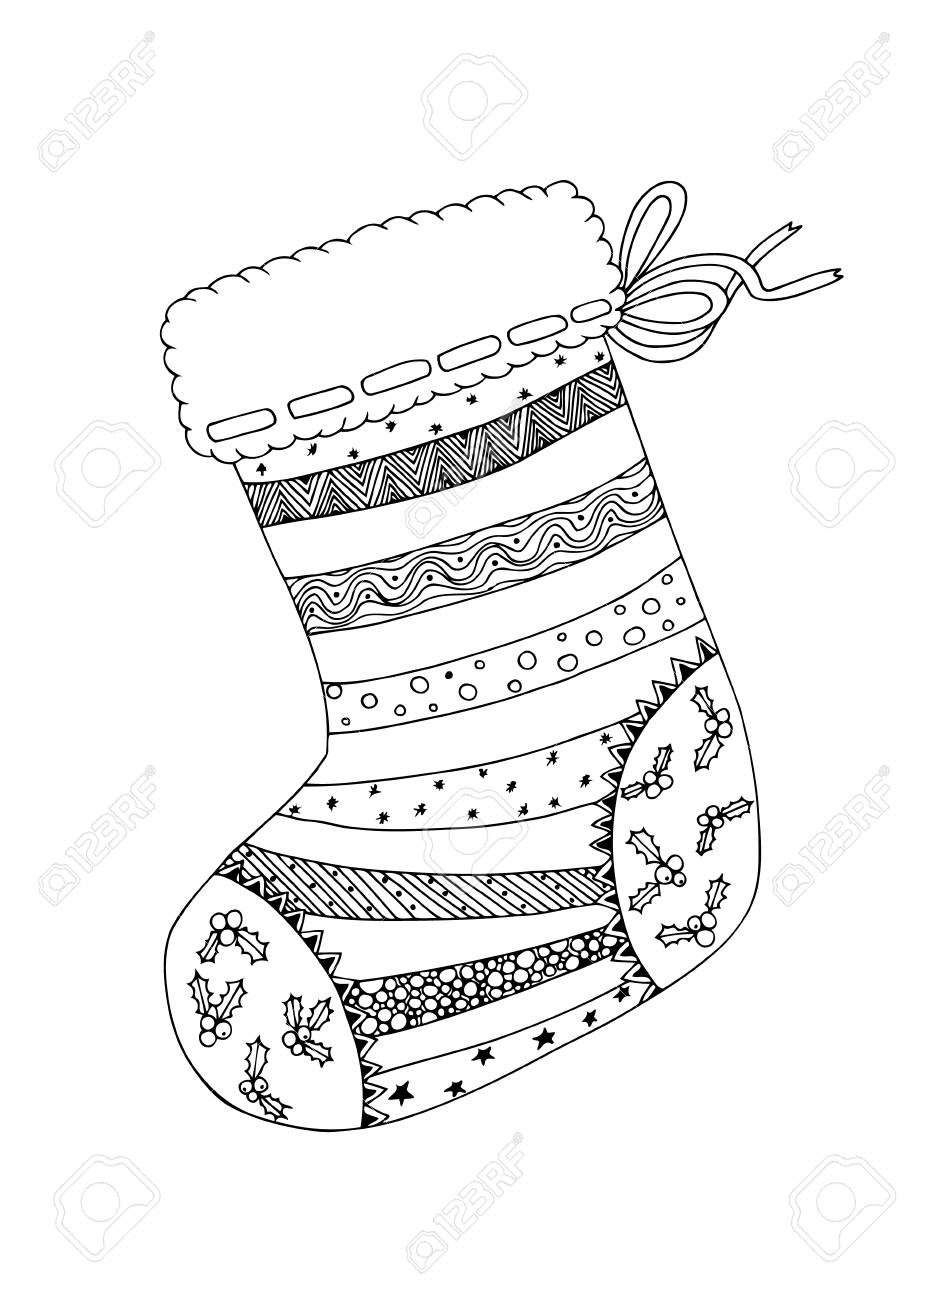 Doodle Sketch Of Christmas Sock In Black And White Design. Coloring ...